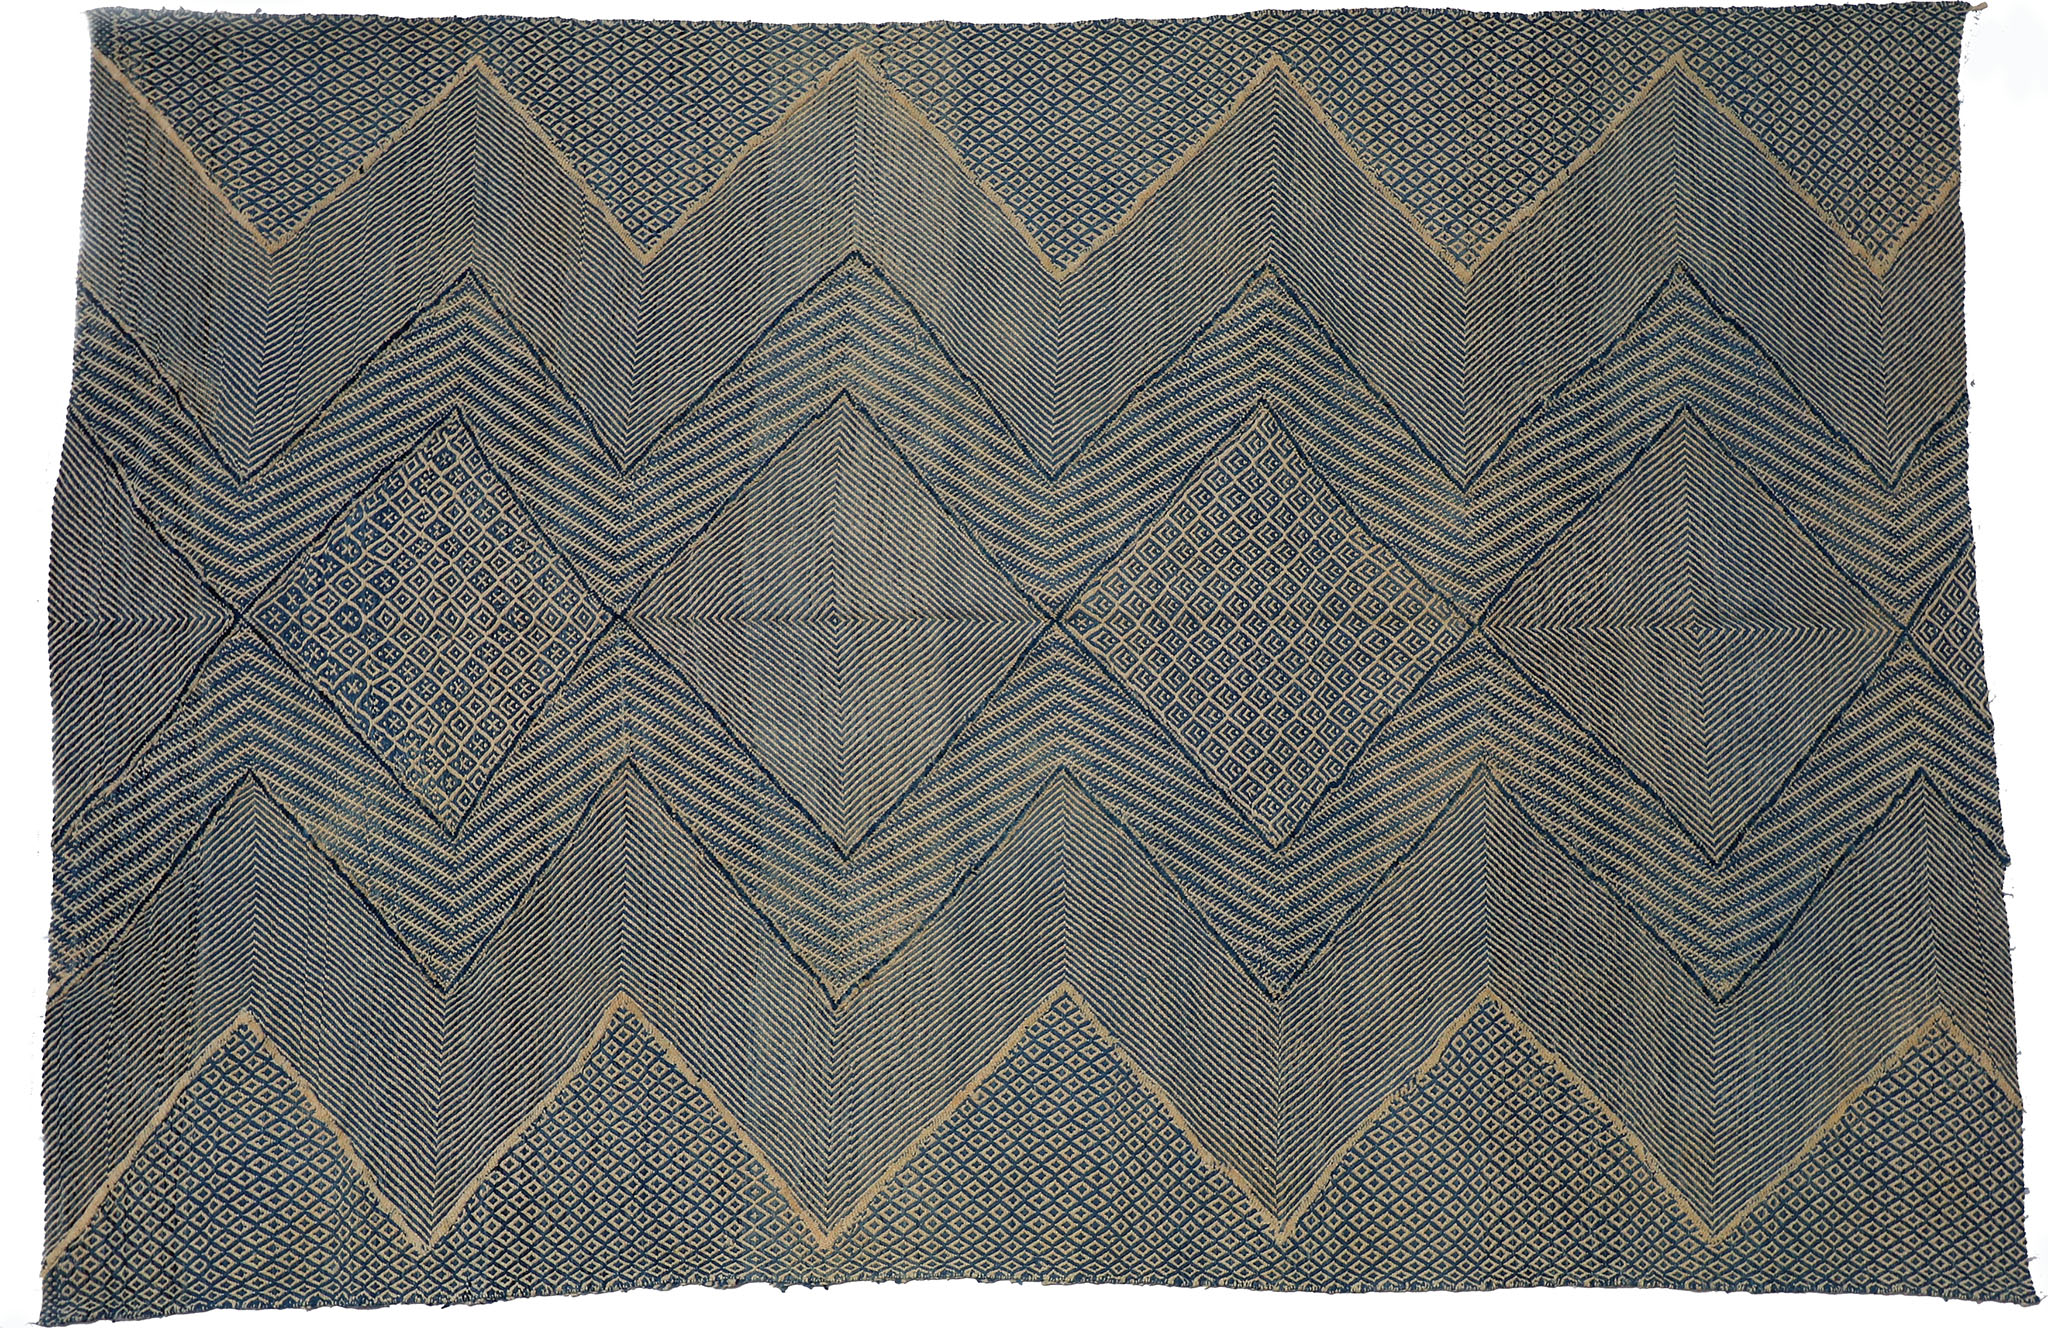 Un-Official Selection, Best Flatweave Design: 'Moroccan Kilim' by Bazar du Sud - bazardusud.com | Image courtesy of Bazar du Sud via Domotex.